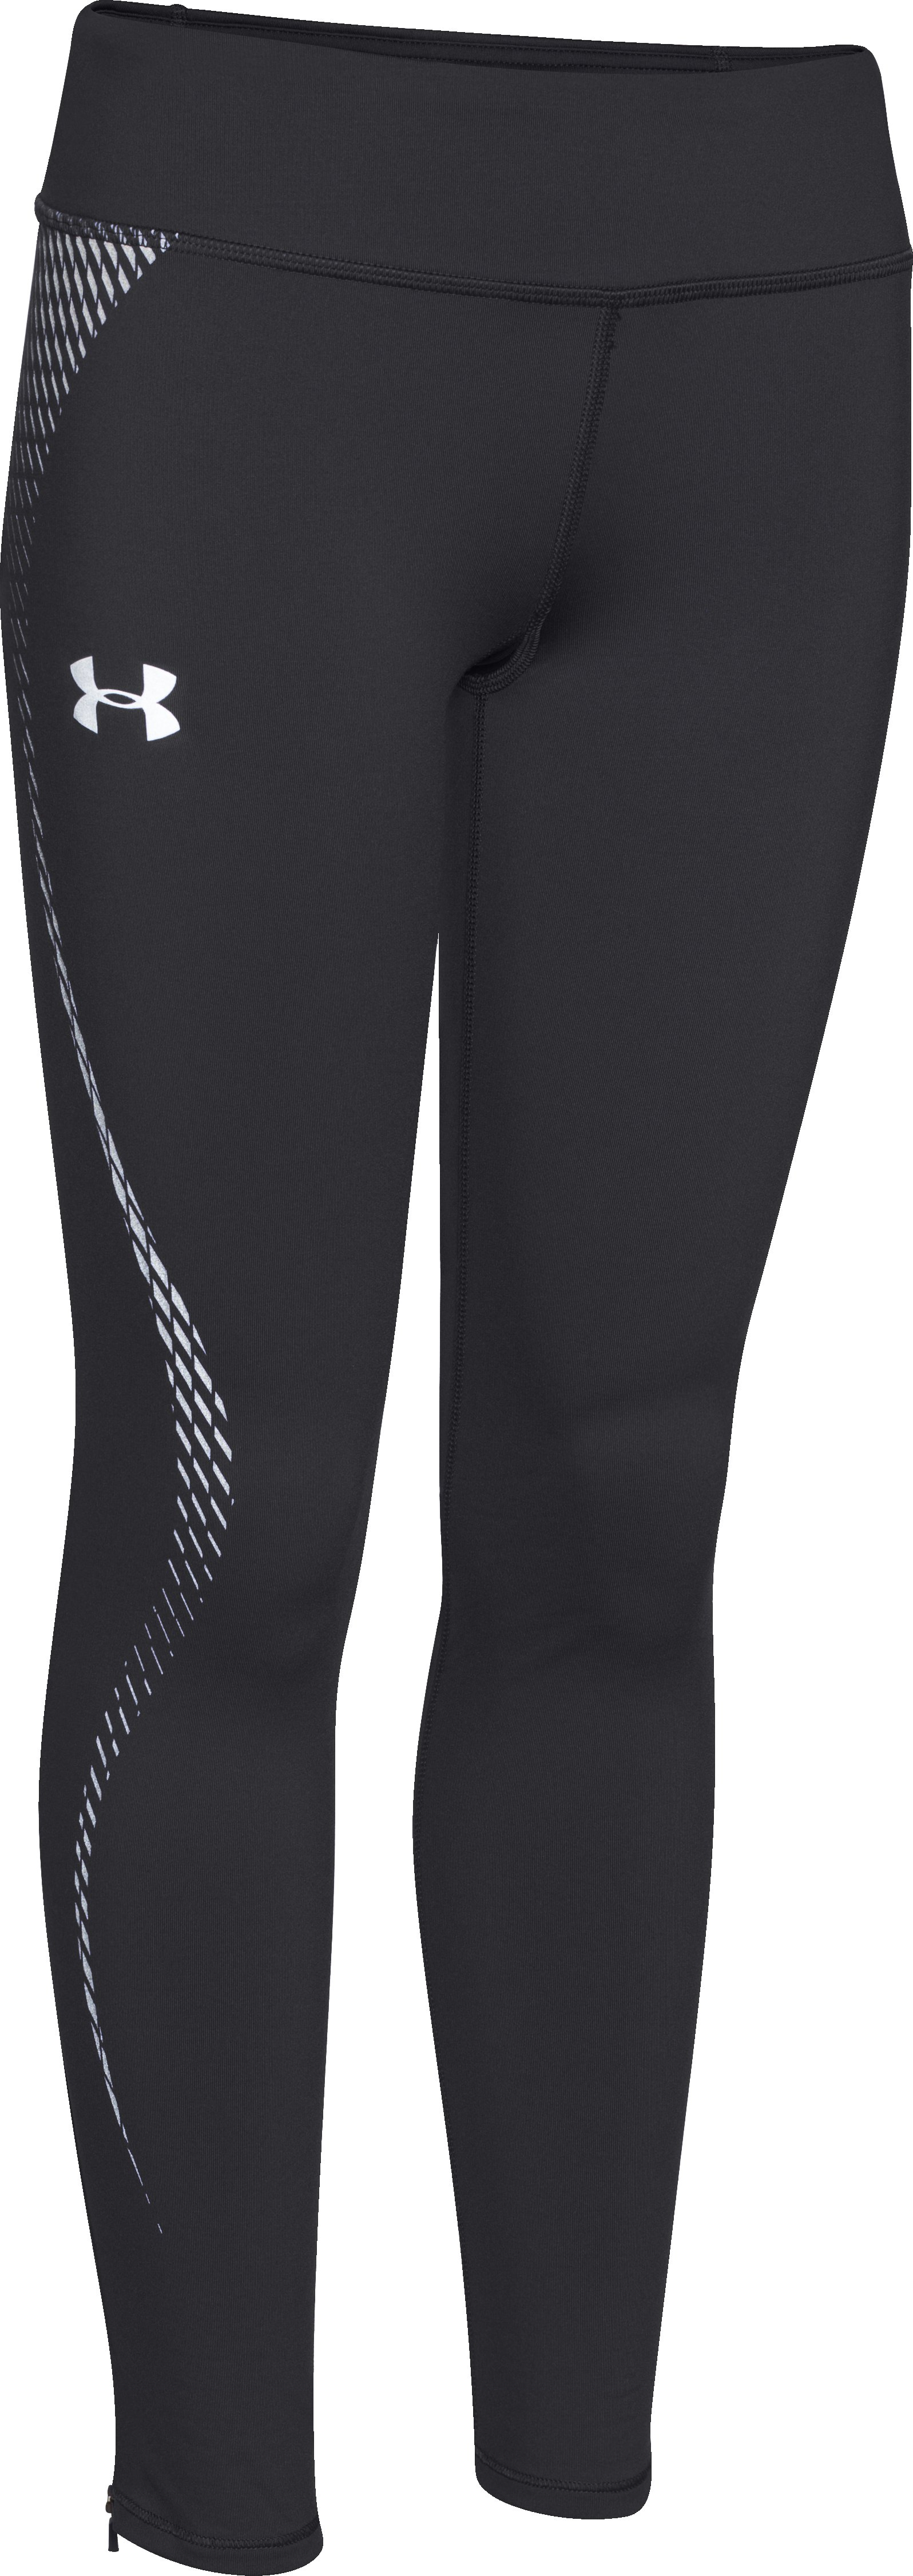 Girls' UA ColdGear® Reflective Leggings, Black